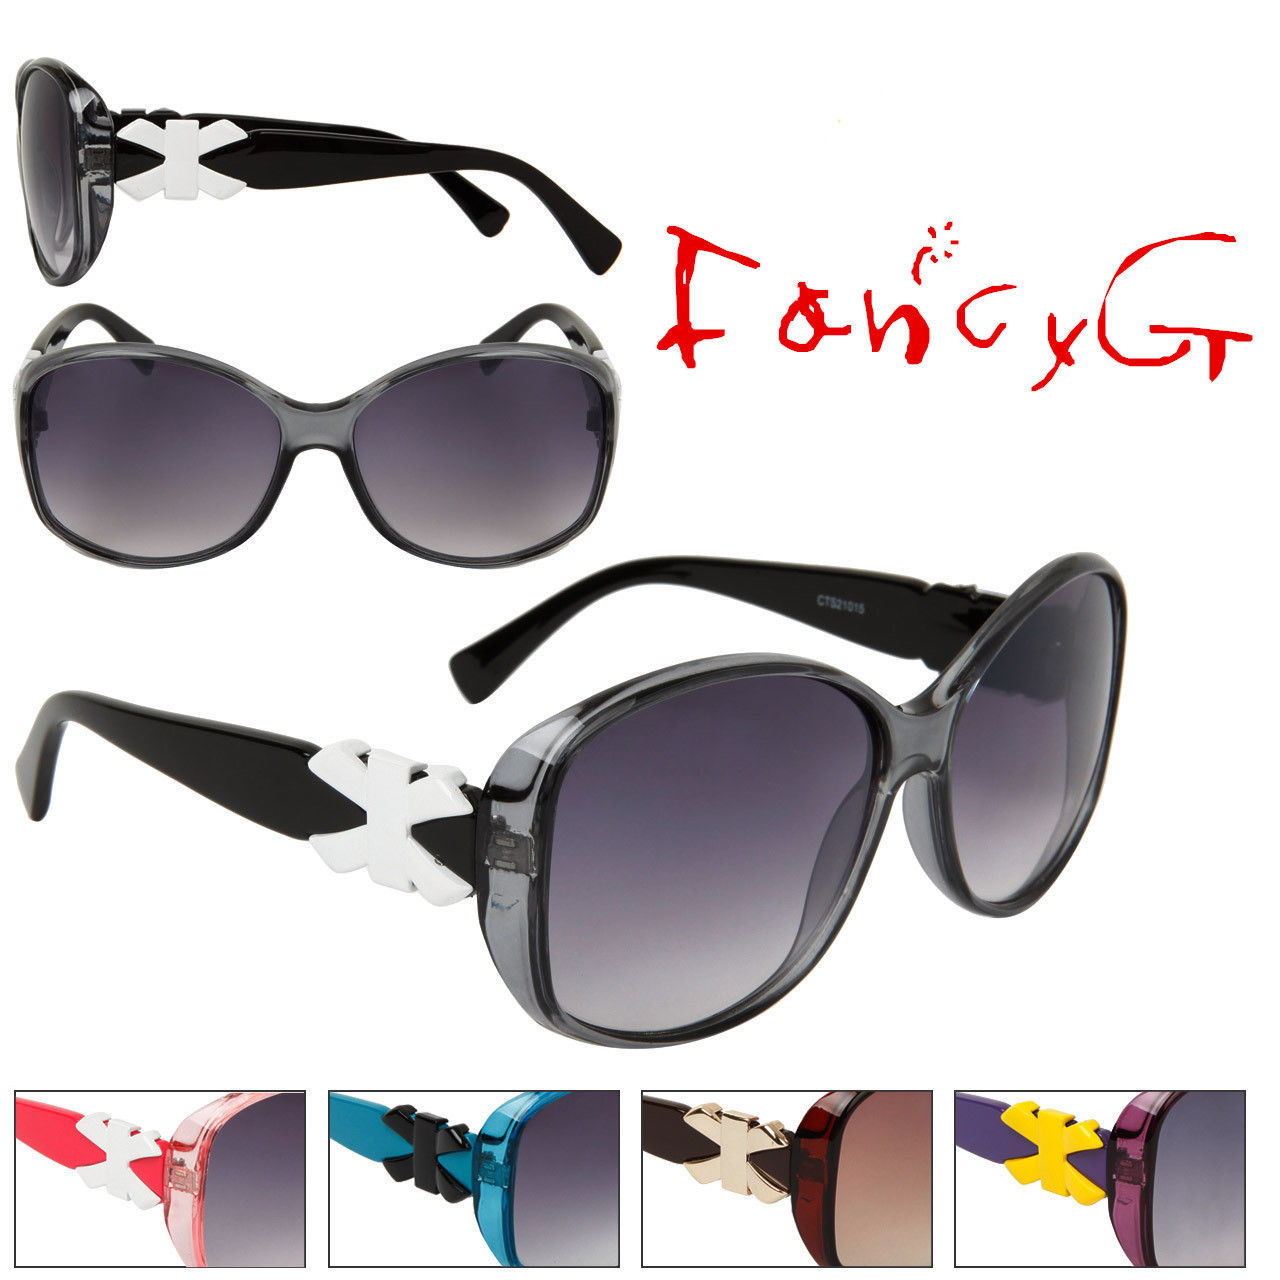 12 Assorted Unisex Fashion Sunglasses Stylish Bow UV 400 Protection